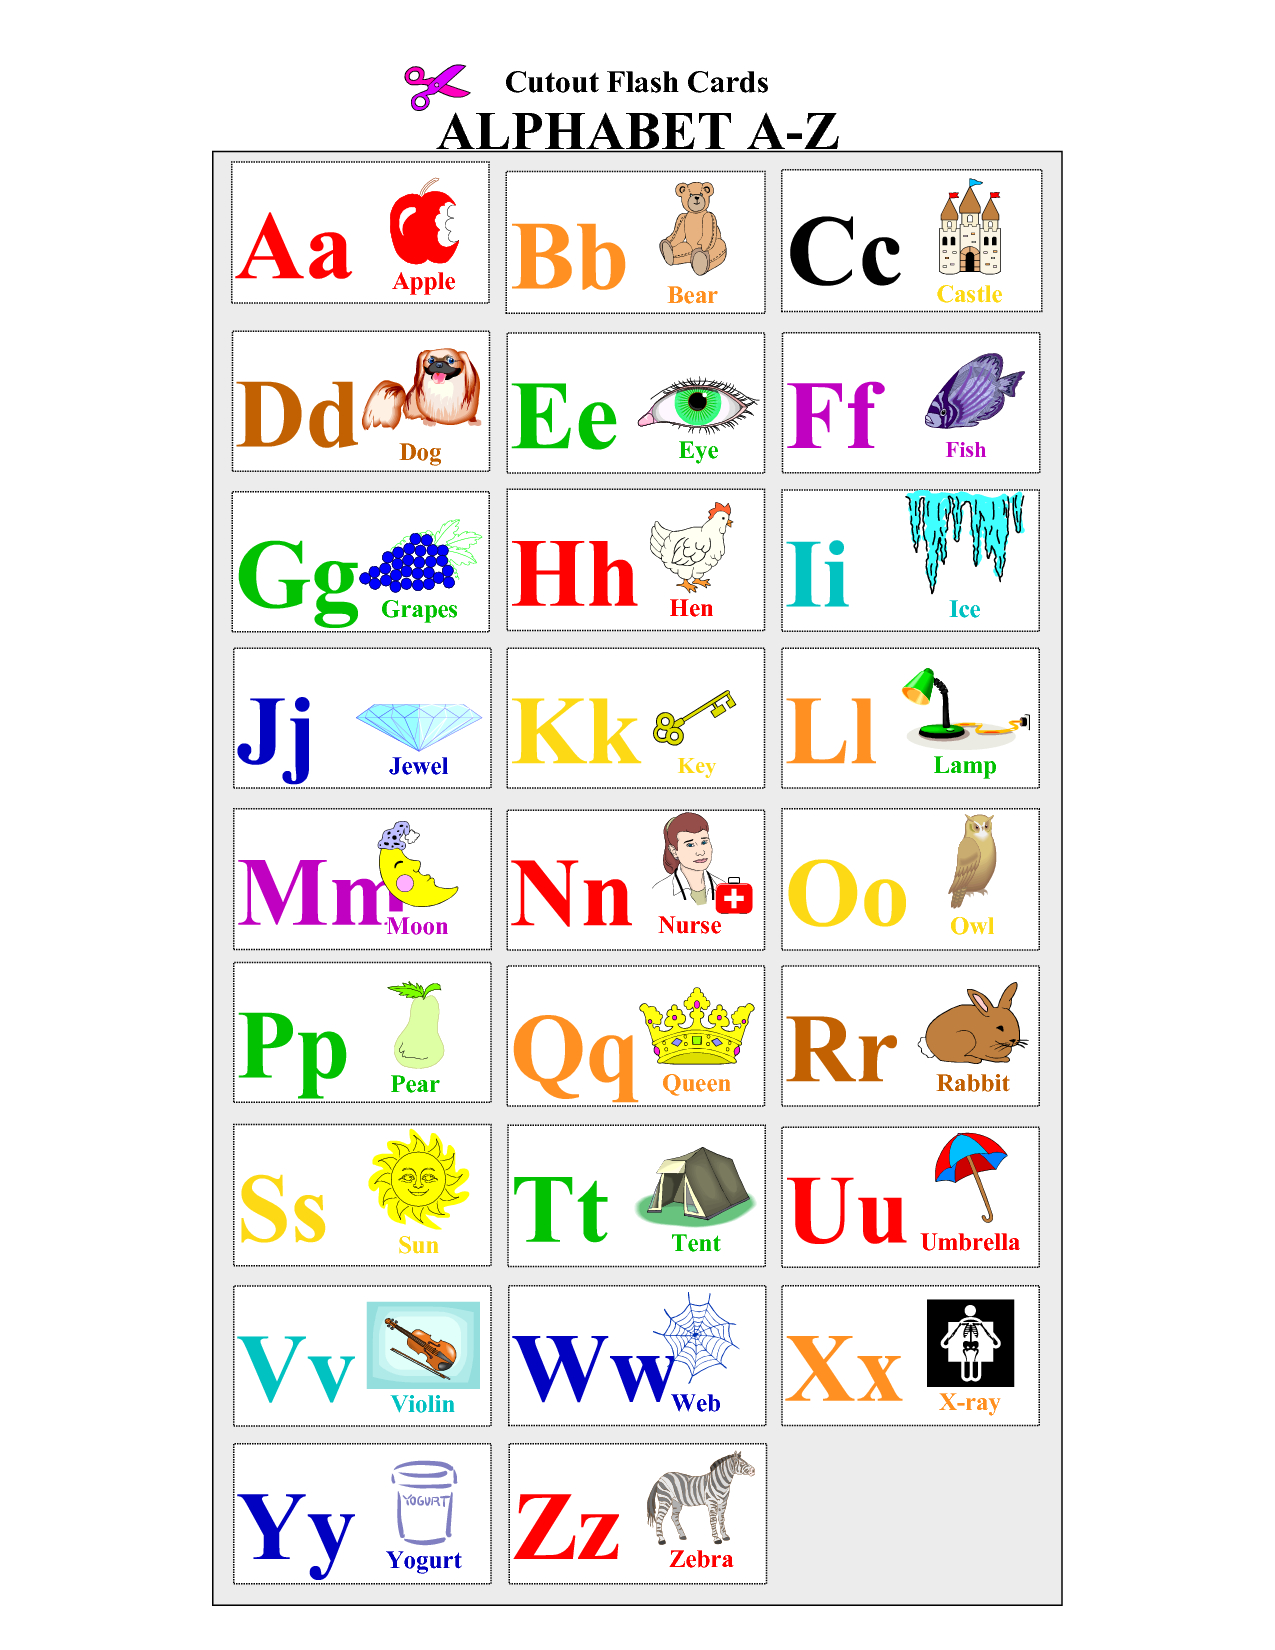 Alphabet-Flash-Cards-To-Print - Coloring Pages For Adults,coloring - Abc Flash Cards Free Printable